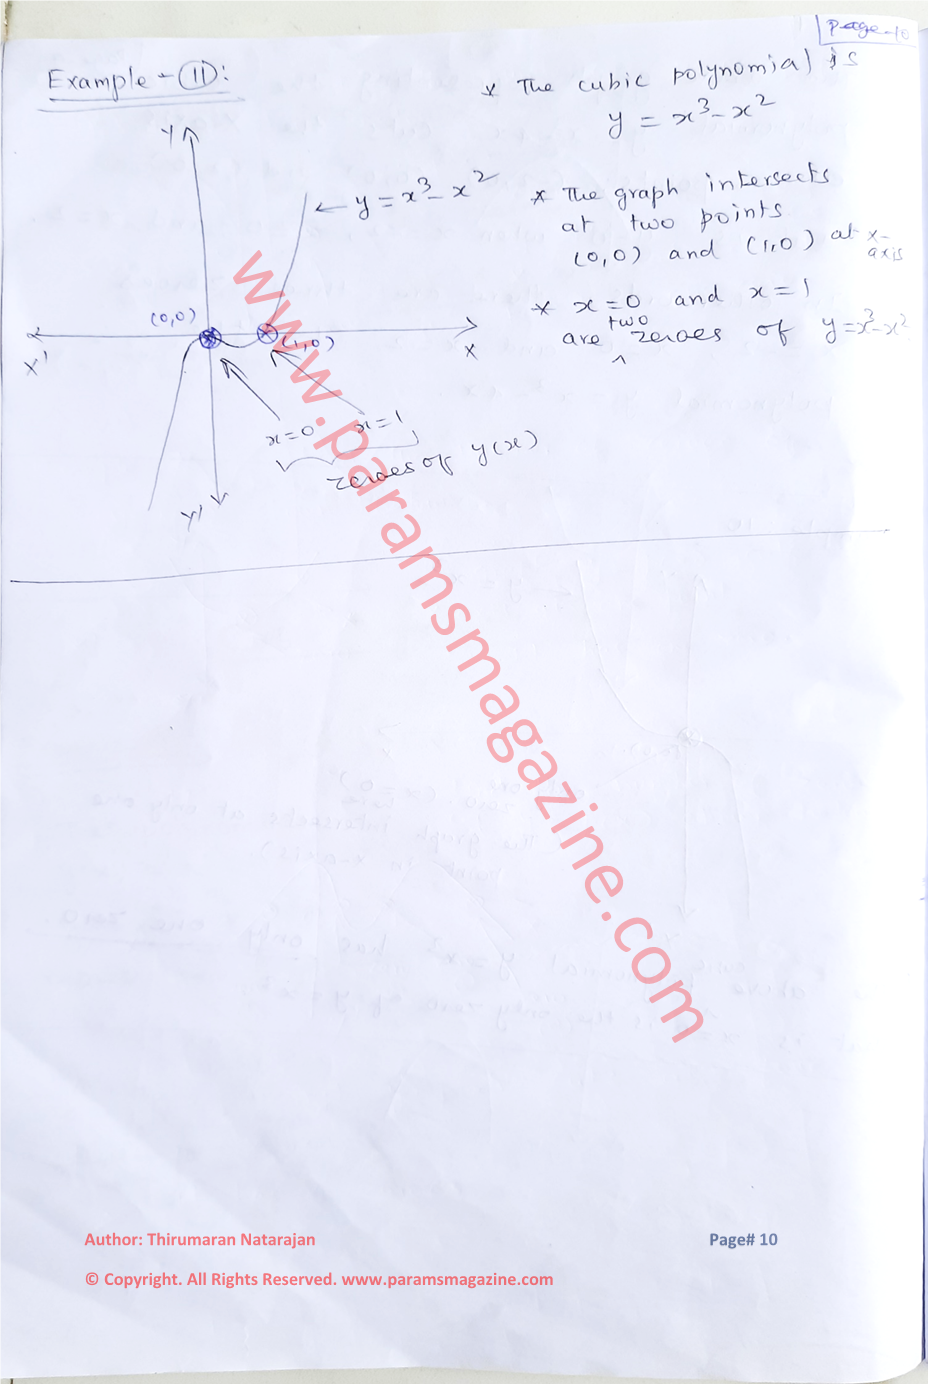 Class-10 - Polynomials - Notes - Page-10